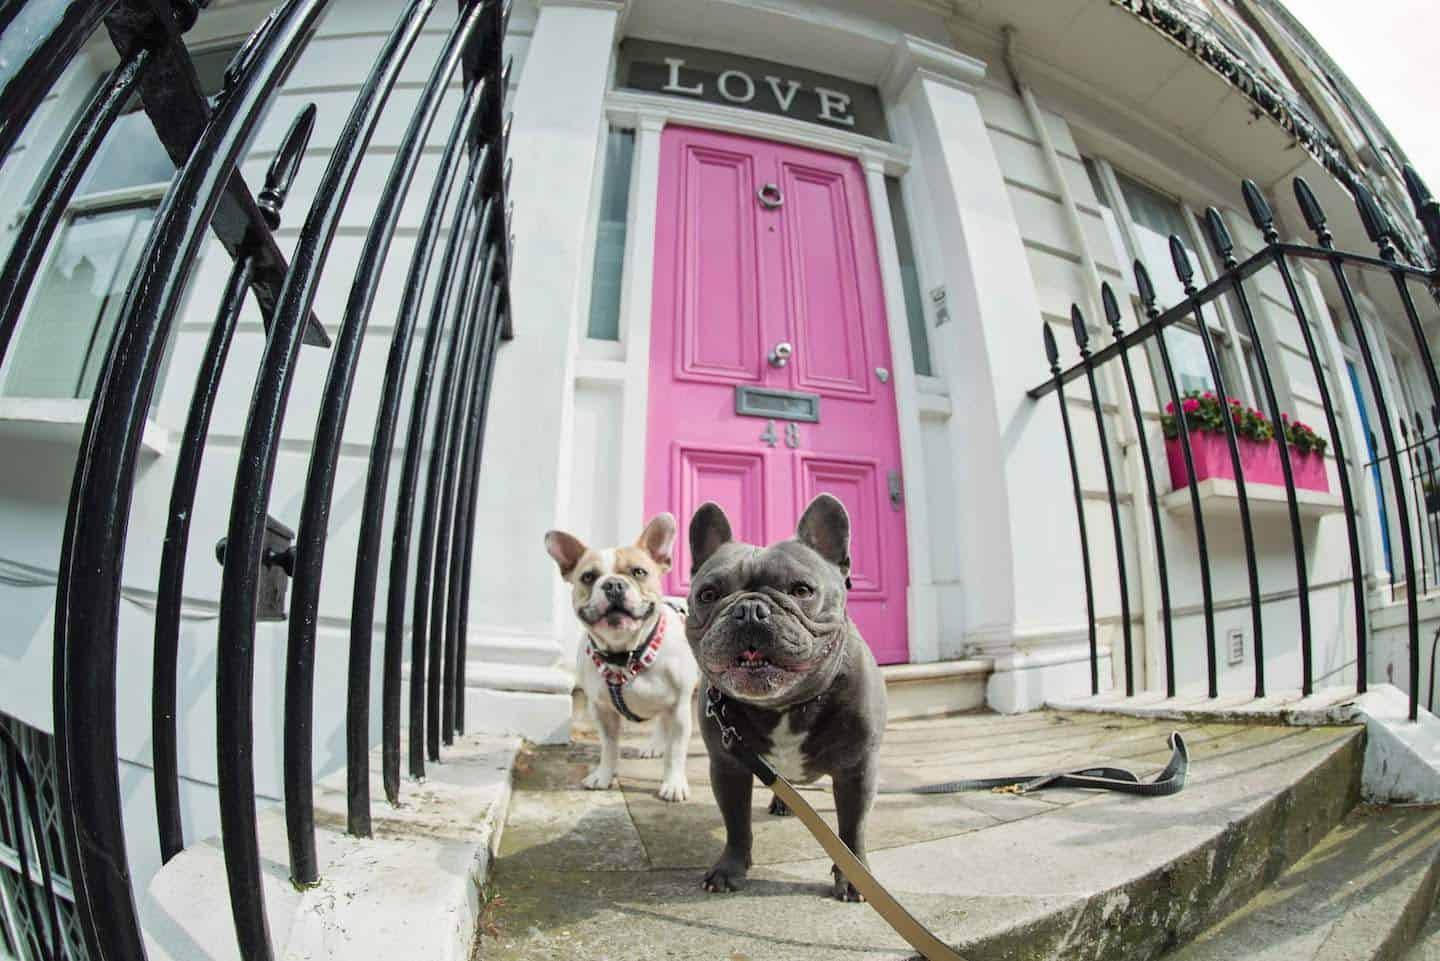 Dog-friendly London | The Best Dog-friendly Things To Do in London - Herbie and Dave